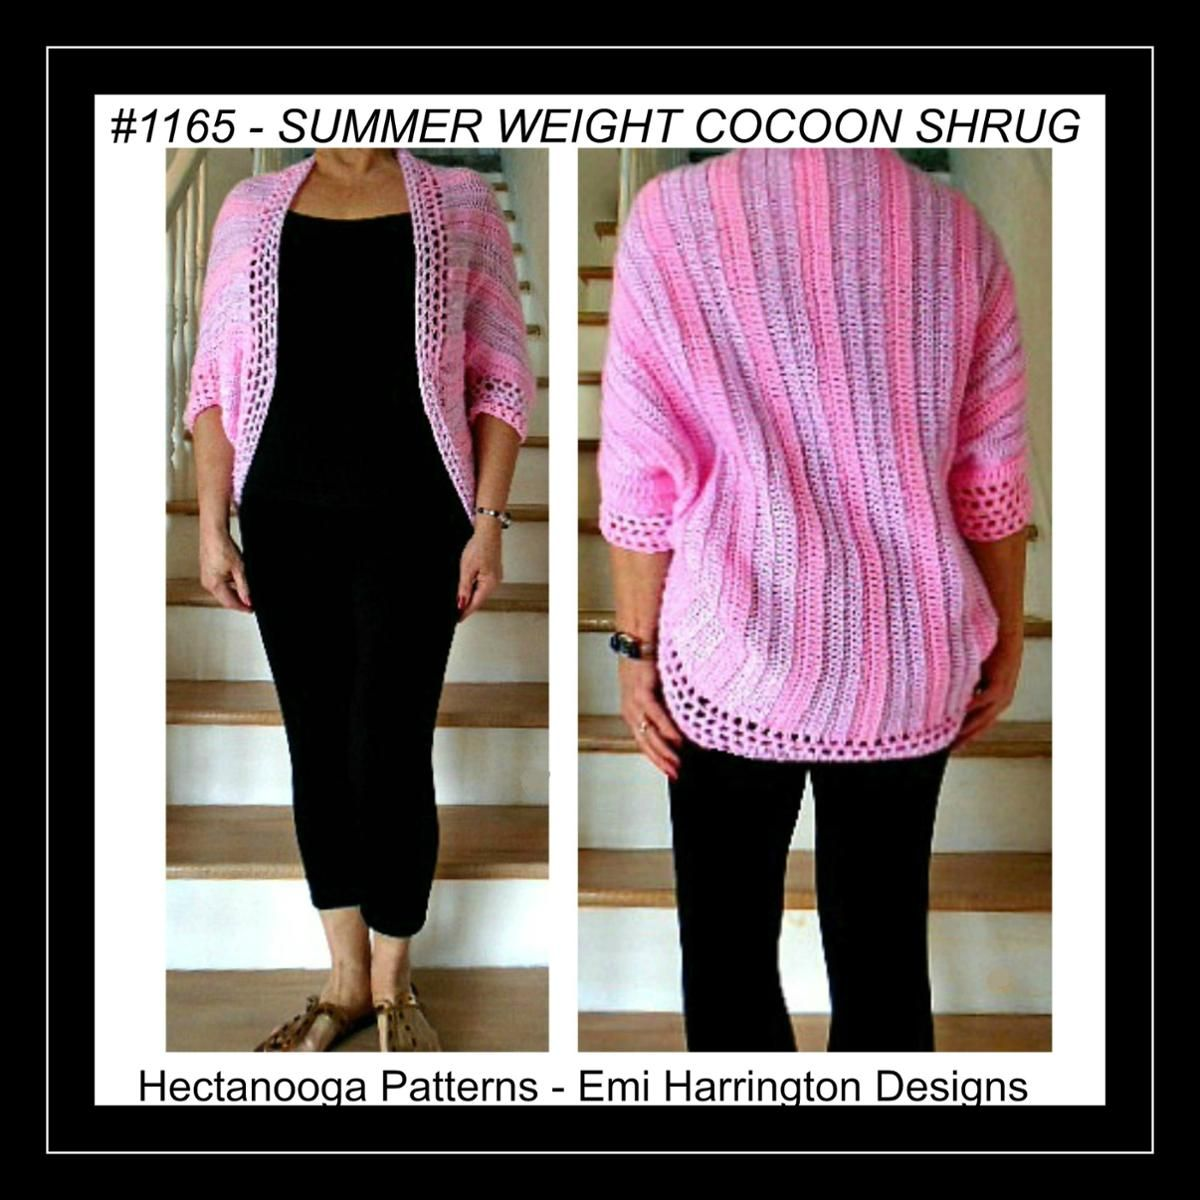 1165 - SUMMER WEIGHT COCOON SHRUG, small to plus